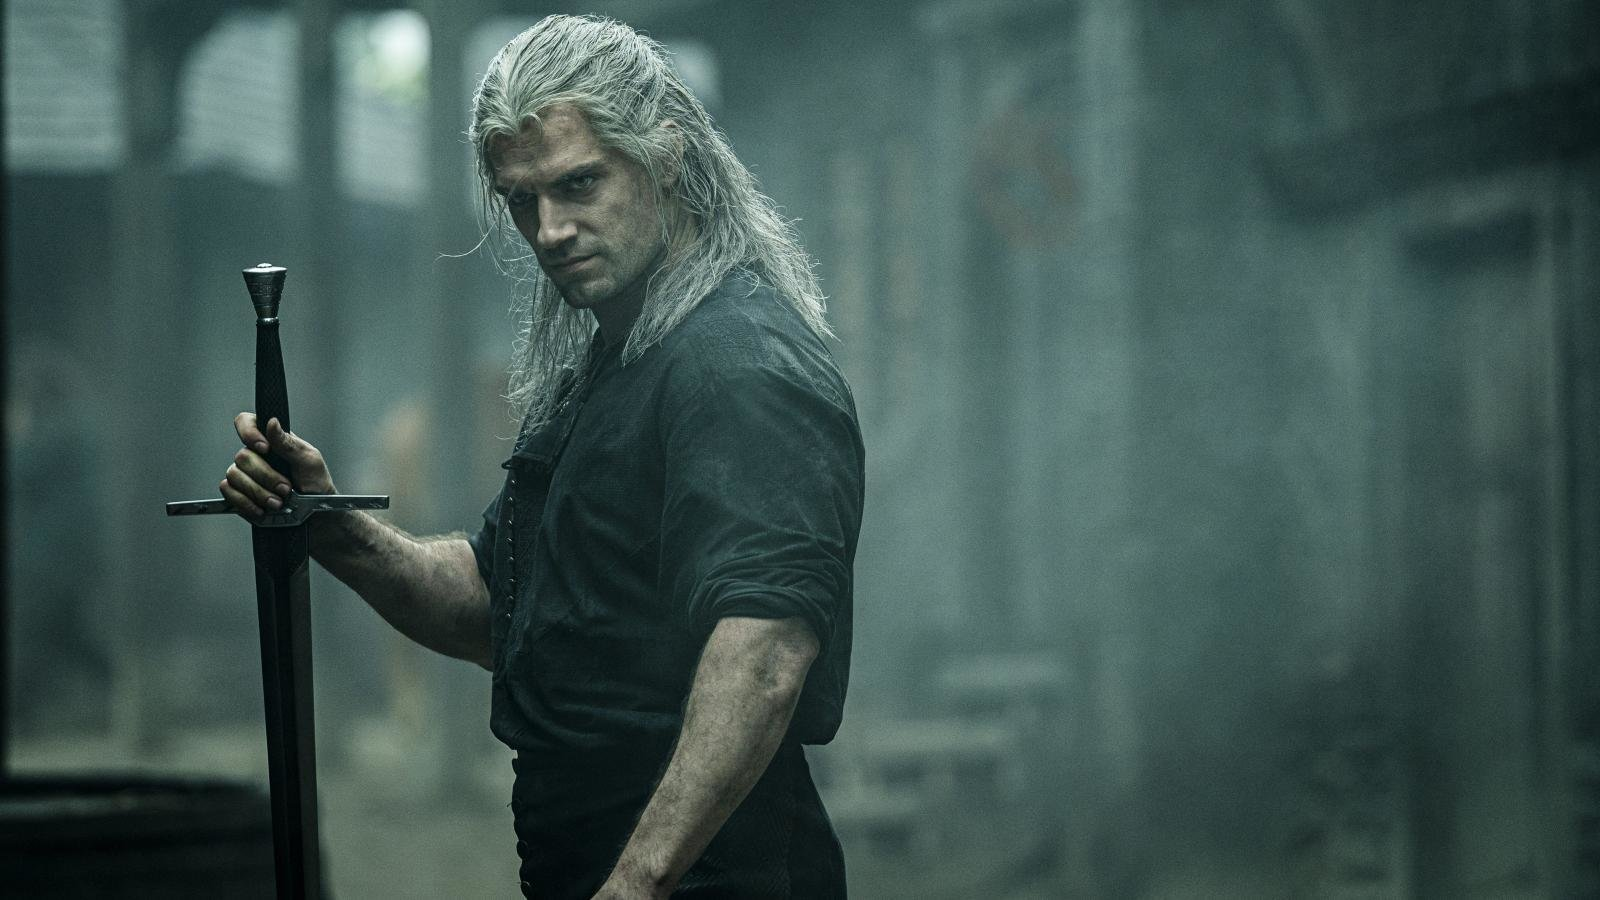 Henry Cavill actor de la serie The Witcher